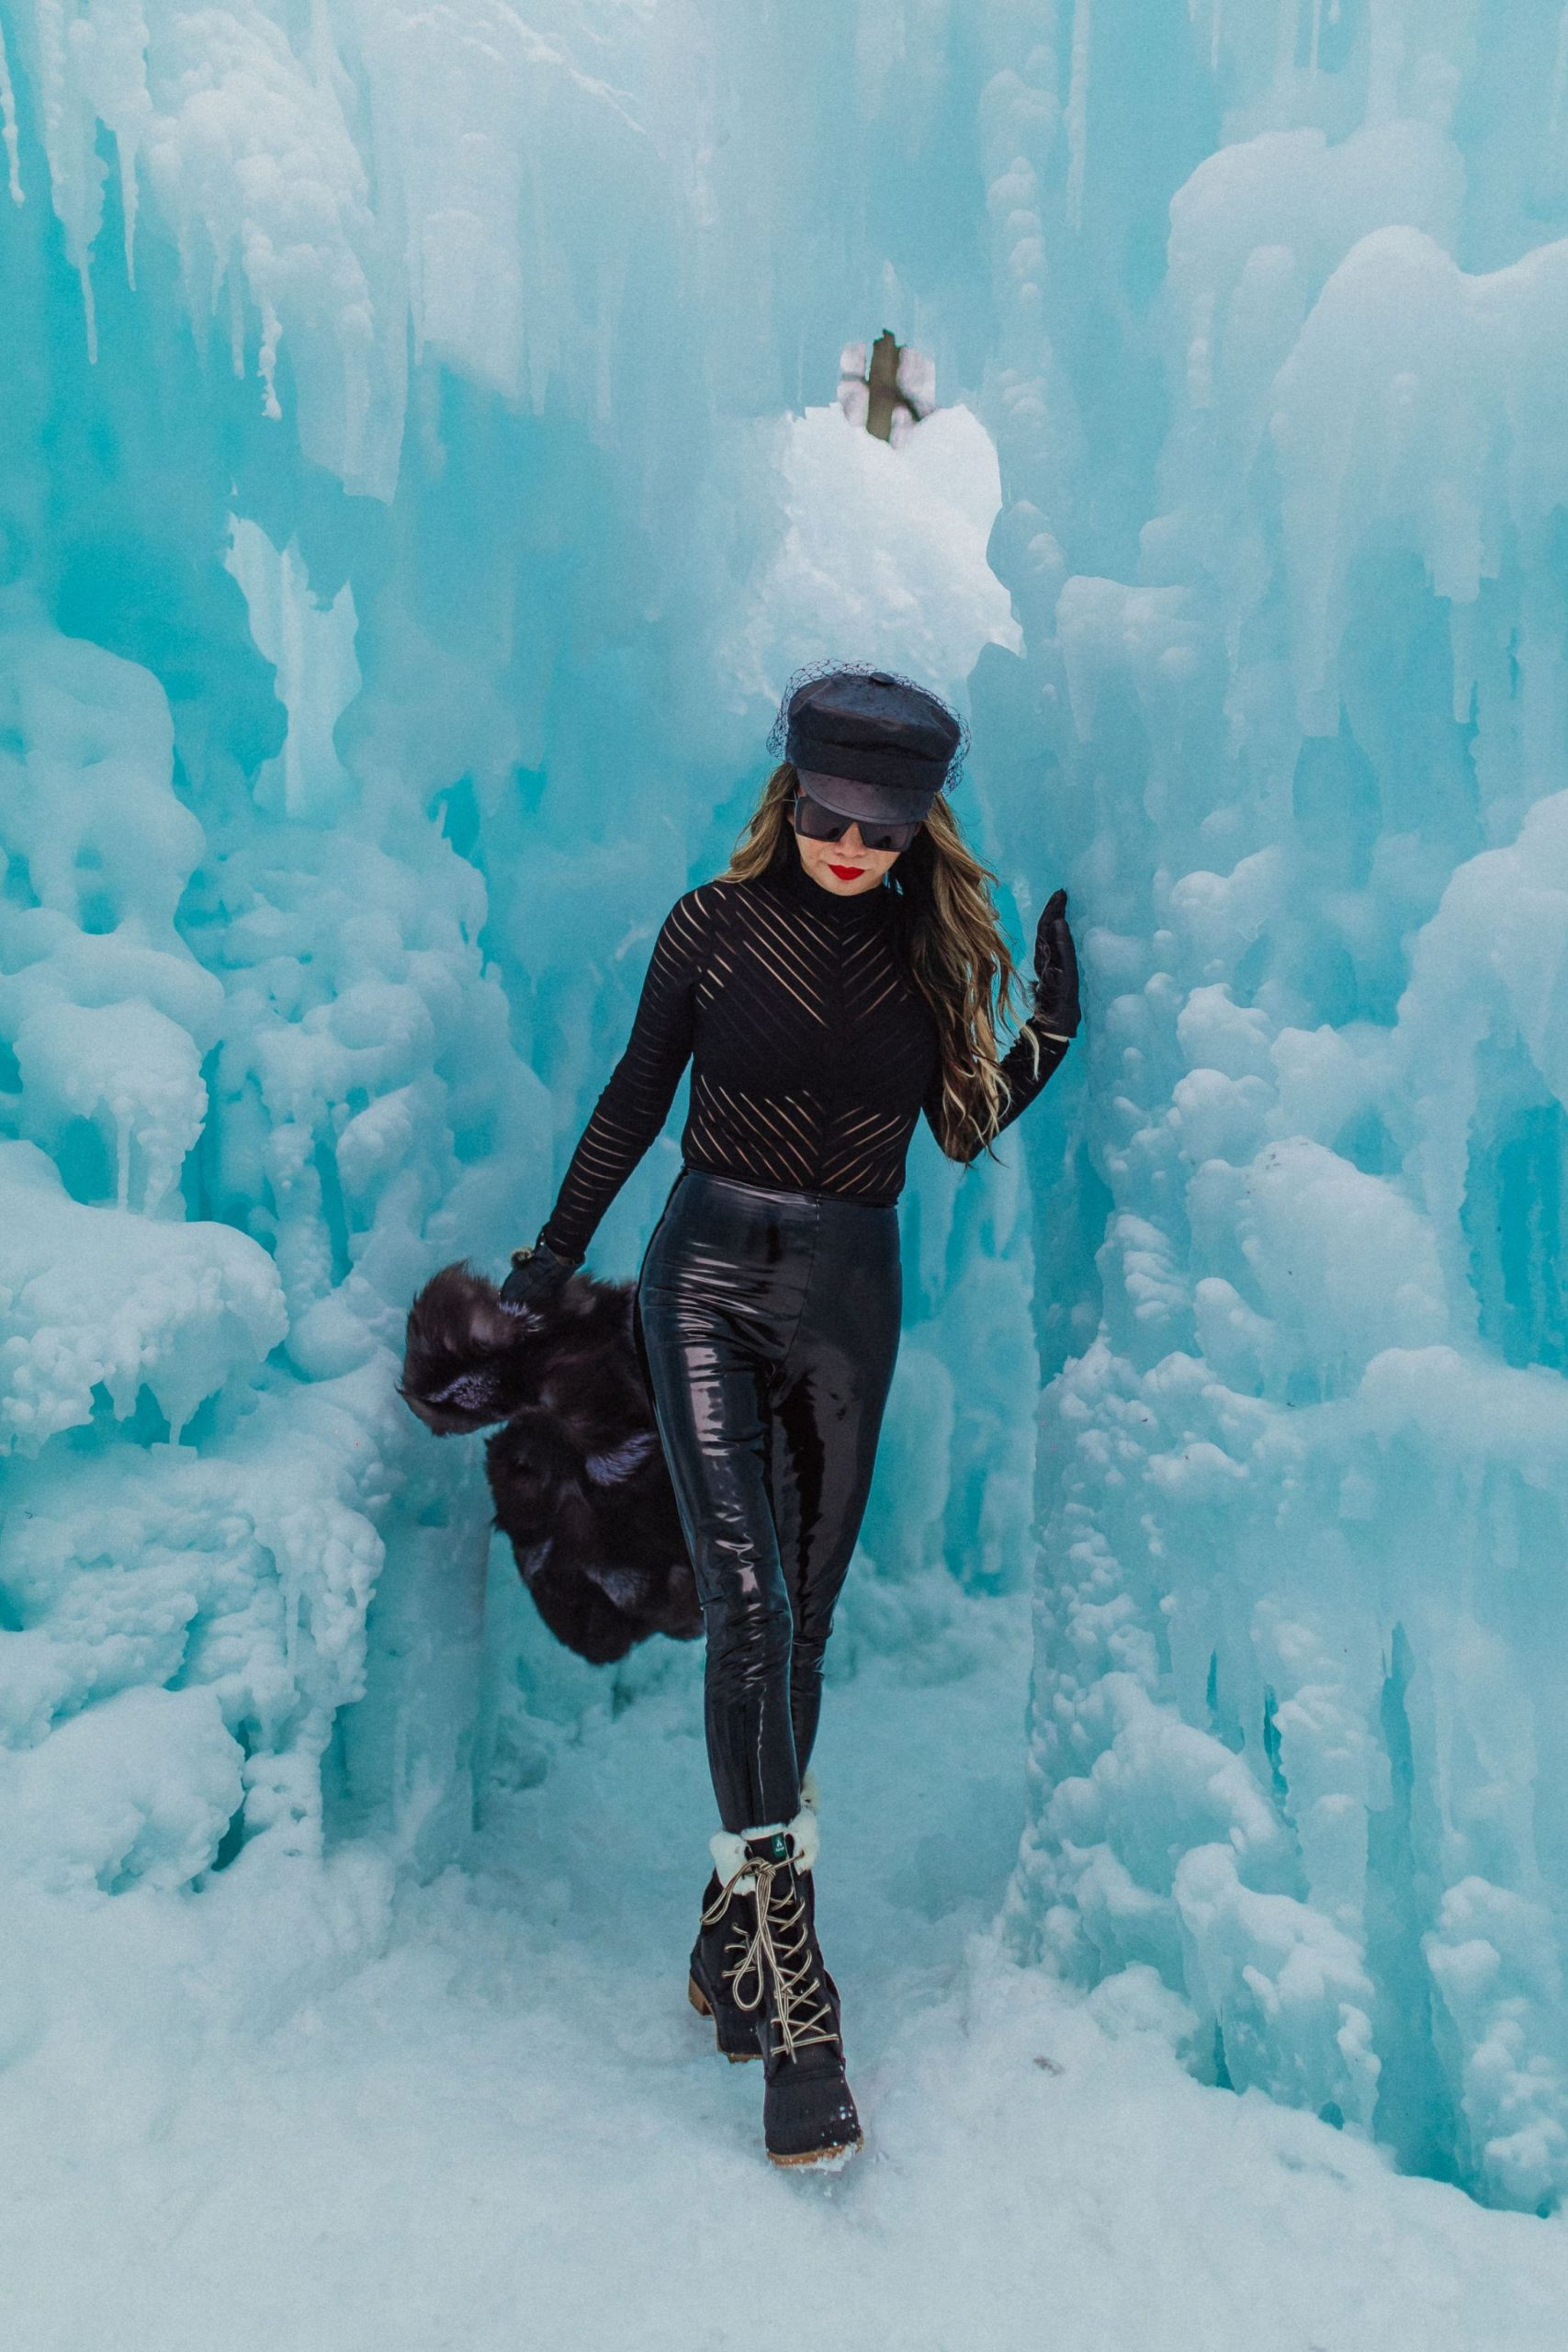 ice castles wisconsin, Ice castles photography, ice castles lake Geneva wisconsin, ice castles photos, ice caste photography, photography ideas, winter photo ideas, winter photoshoots, chicago blogger, Jennifer Worman